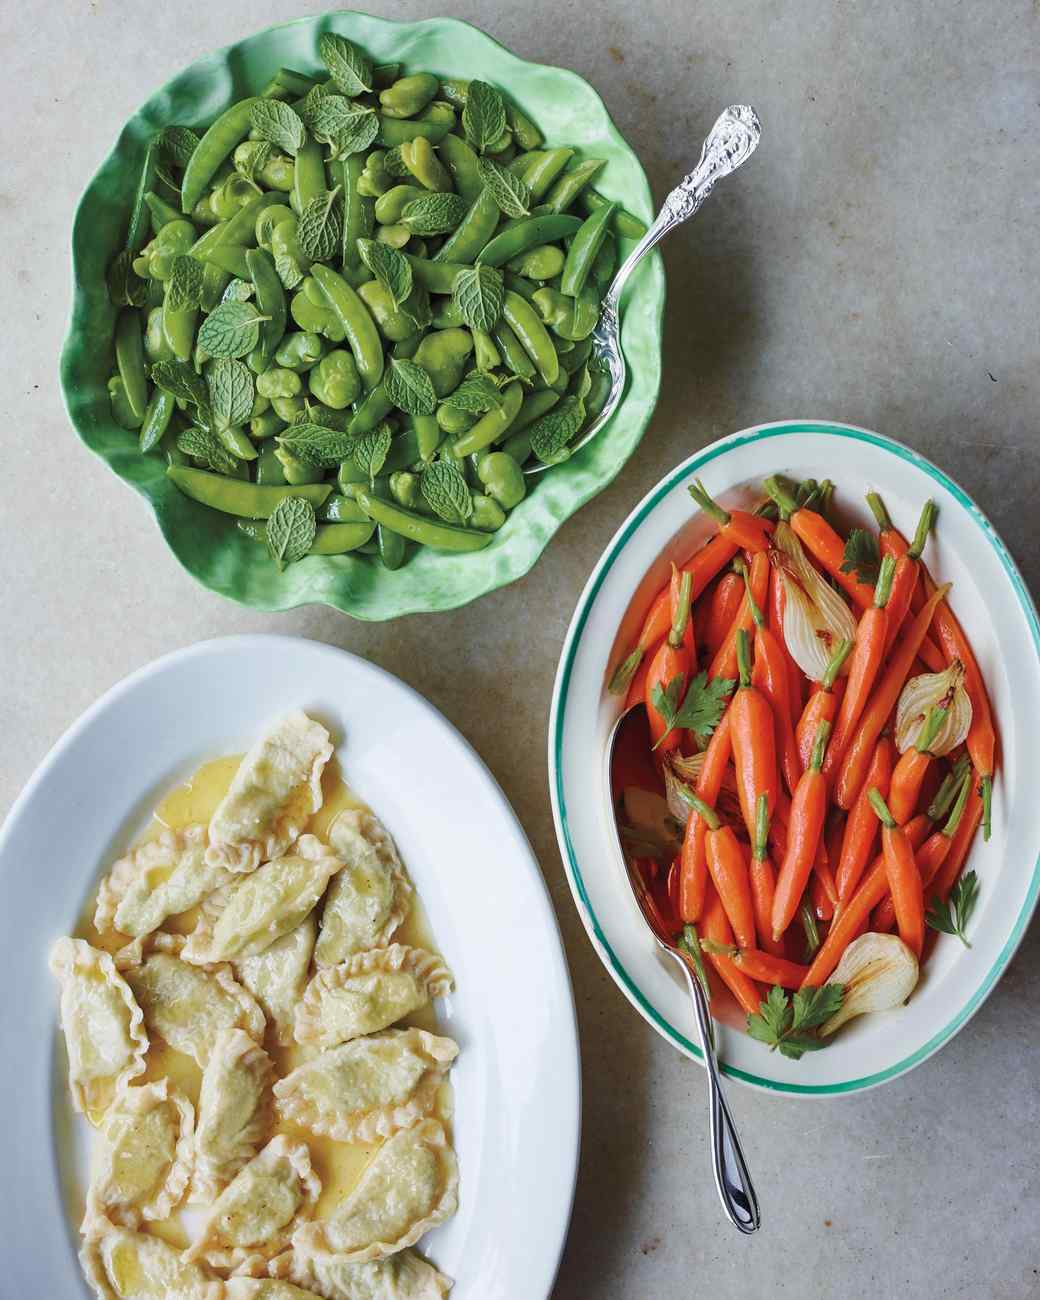 group-side-dishes-71649-04-d112743.jpg